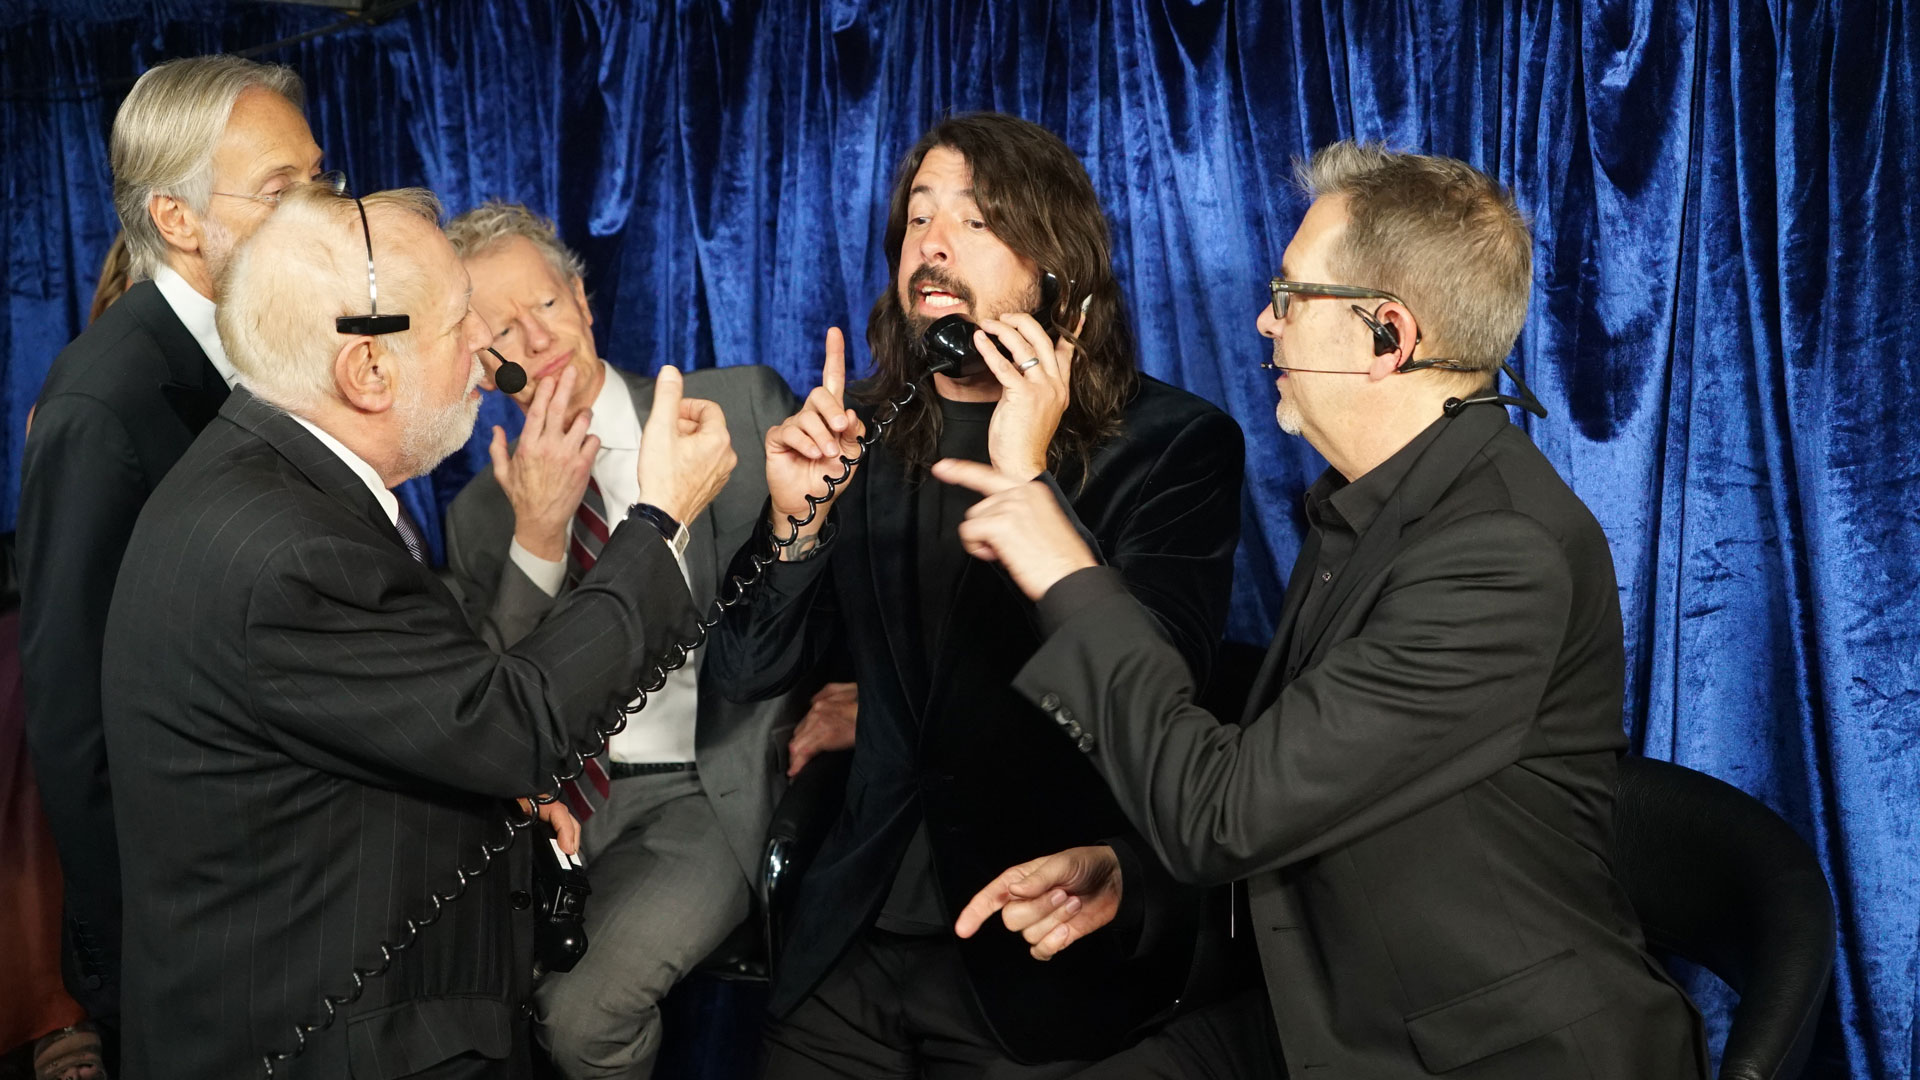 Dave Grohl takes an important phone call